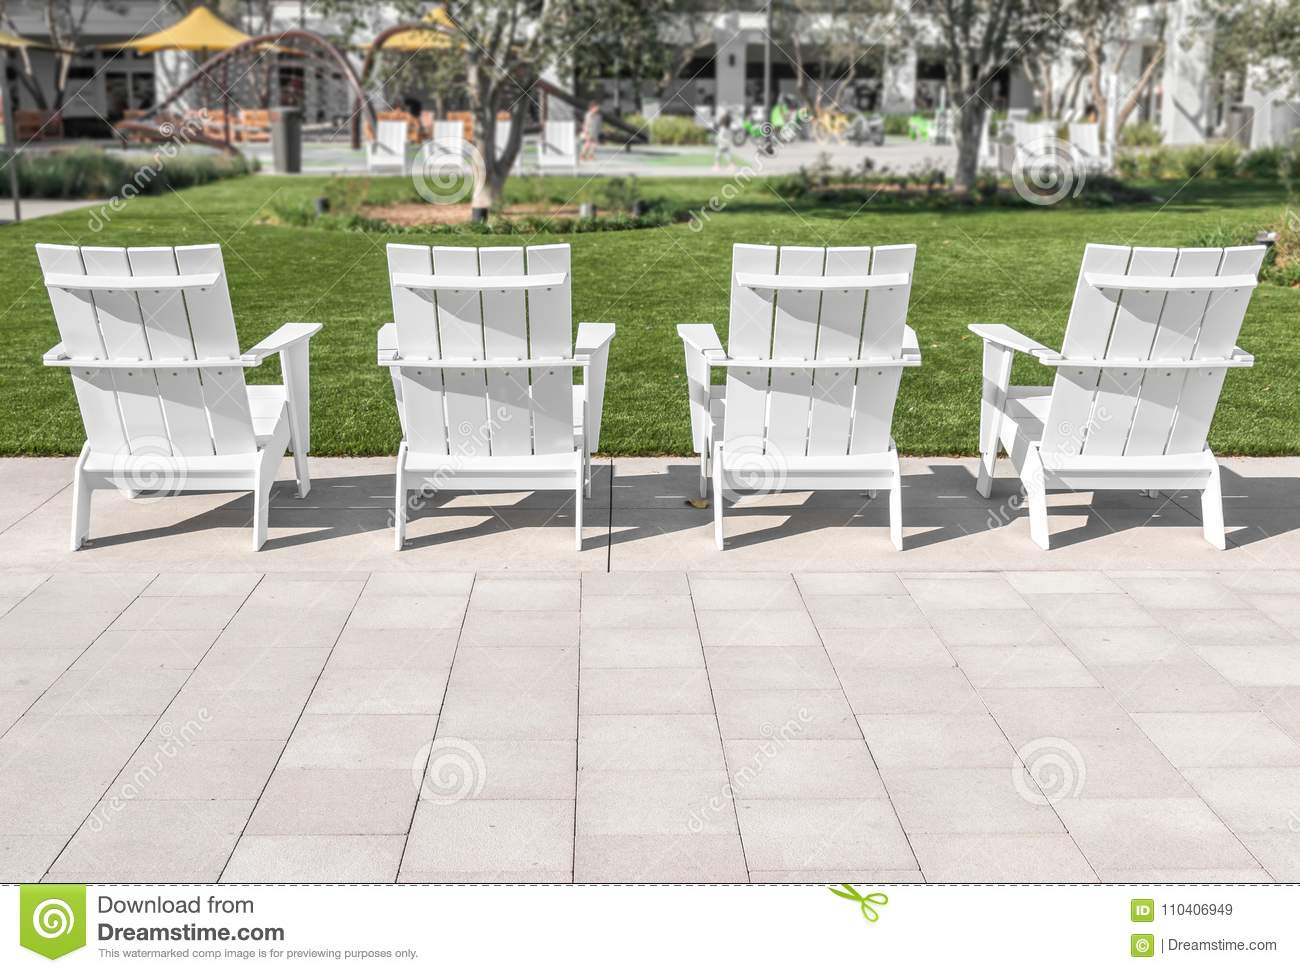 https www dreamstime com outdoor public relaxation play area blurred background grass trees white wooden patio chairs stone floor tile image110406949